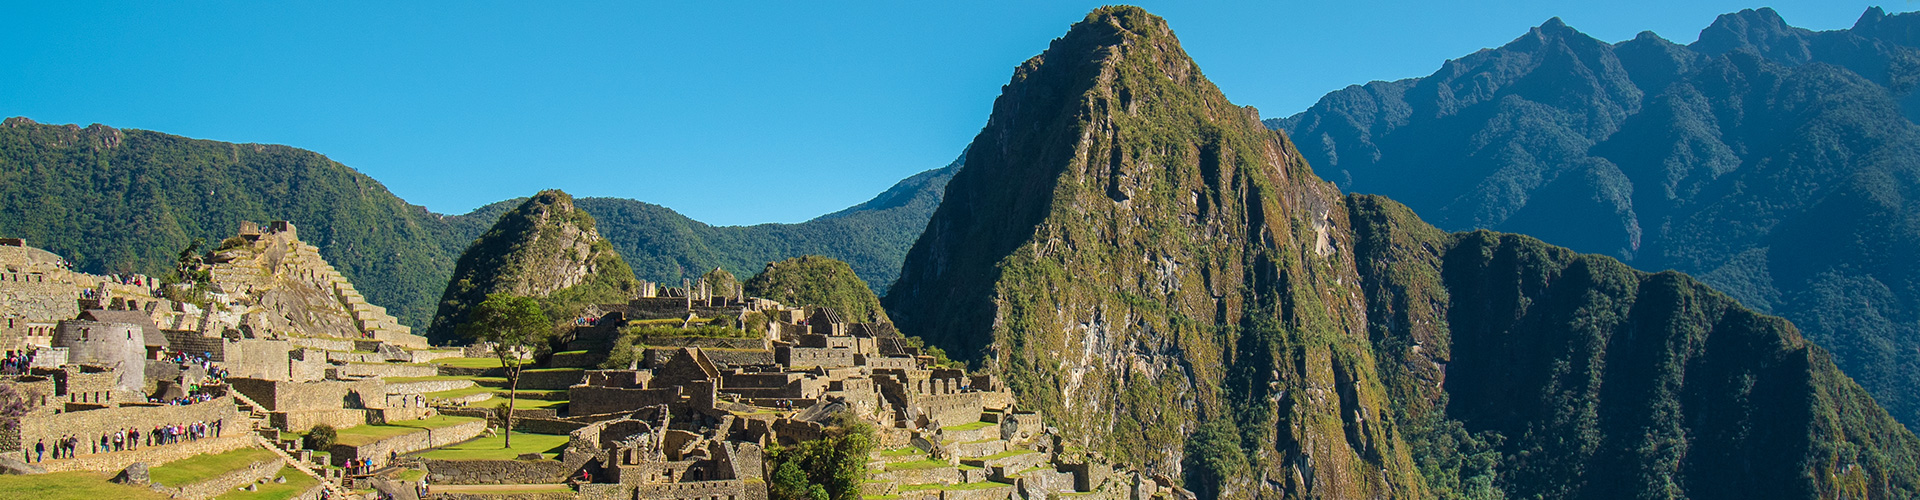 Cycle Peru with Inca Trail (Machu Picchu & the Sacred Valley)